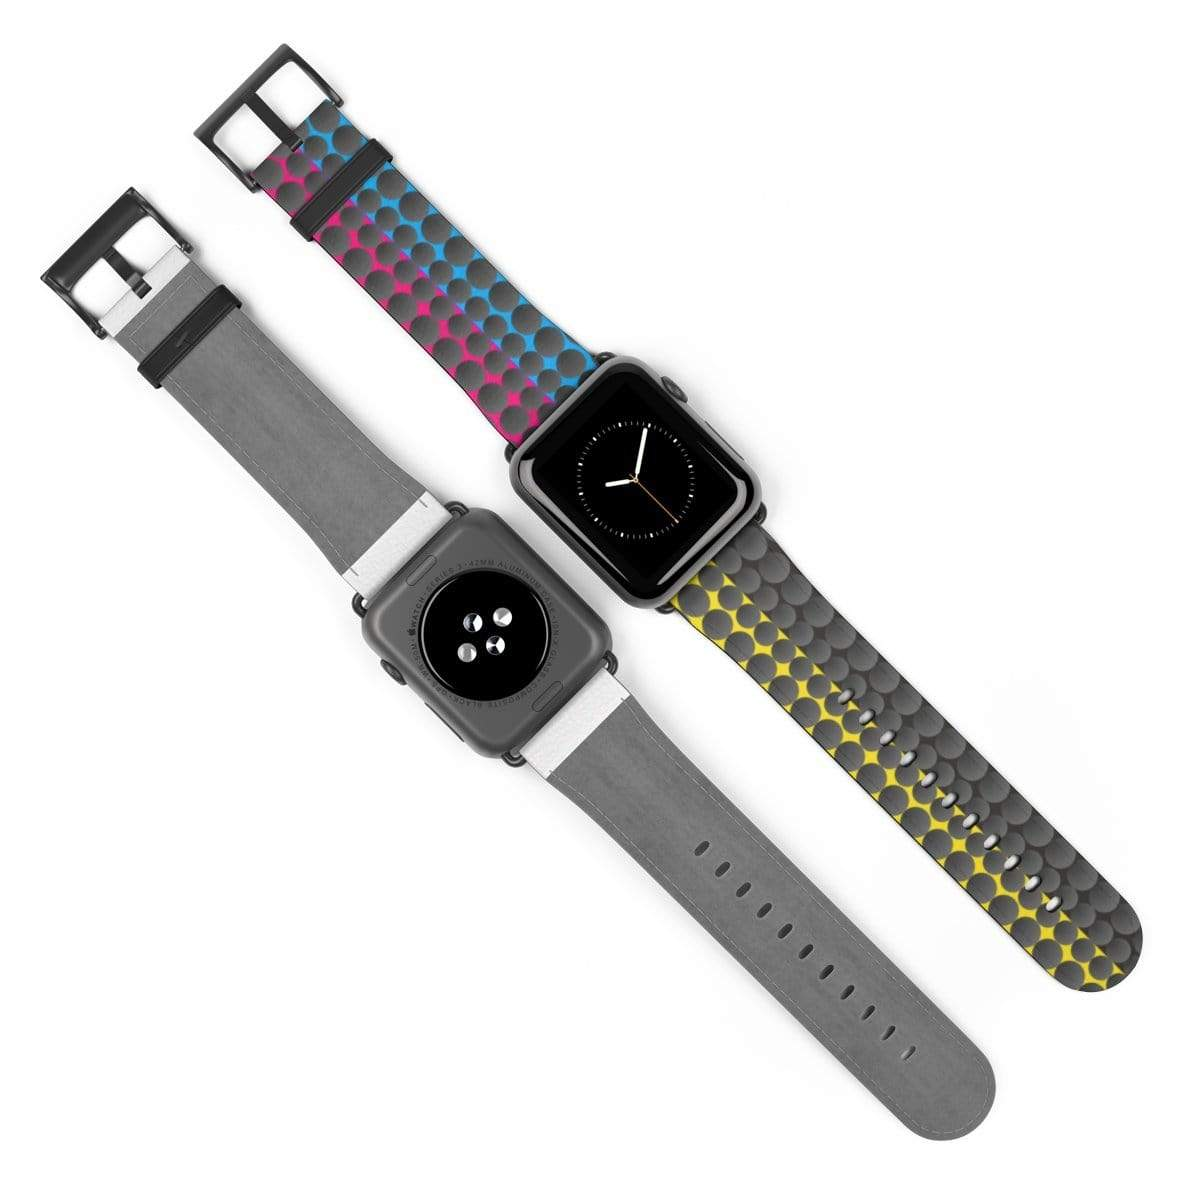 Printify Accessories Plumskum MCYB Dimple Apple Watch Band